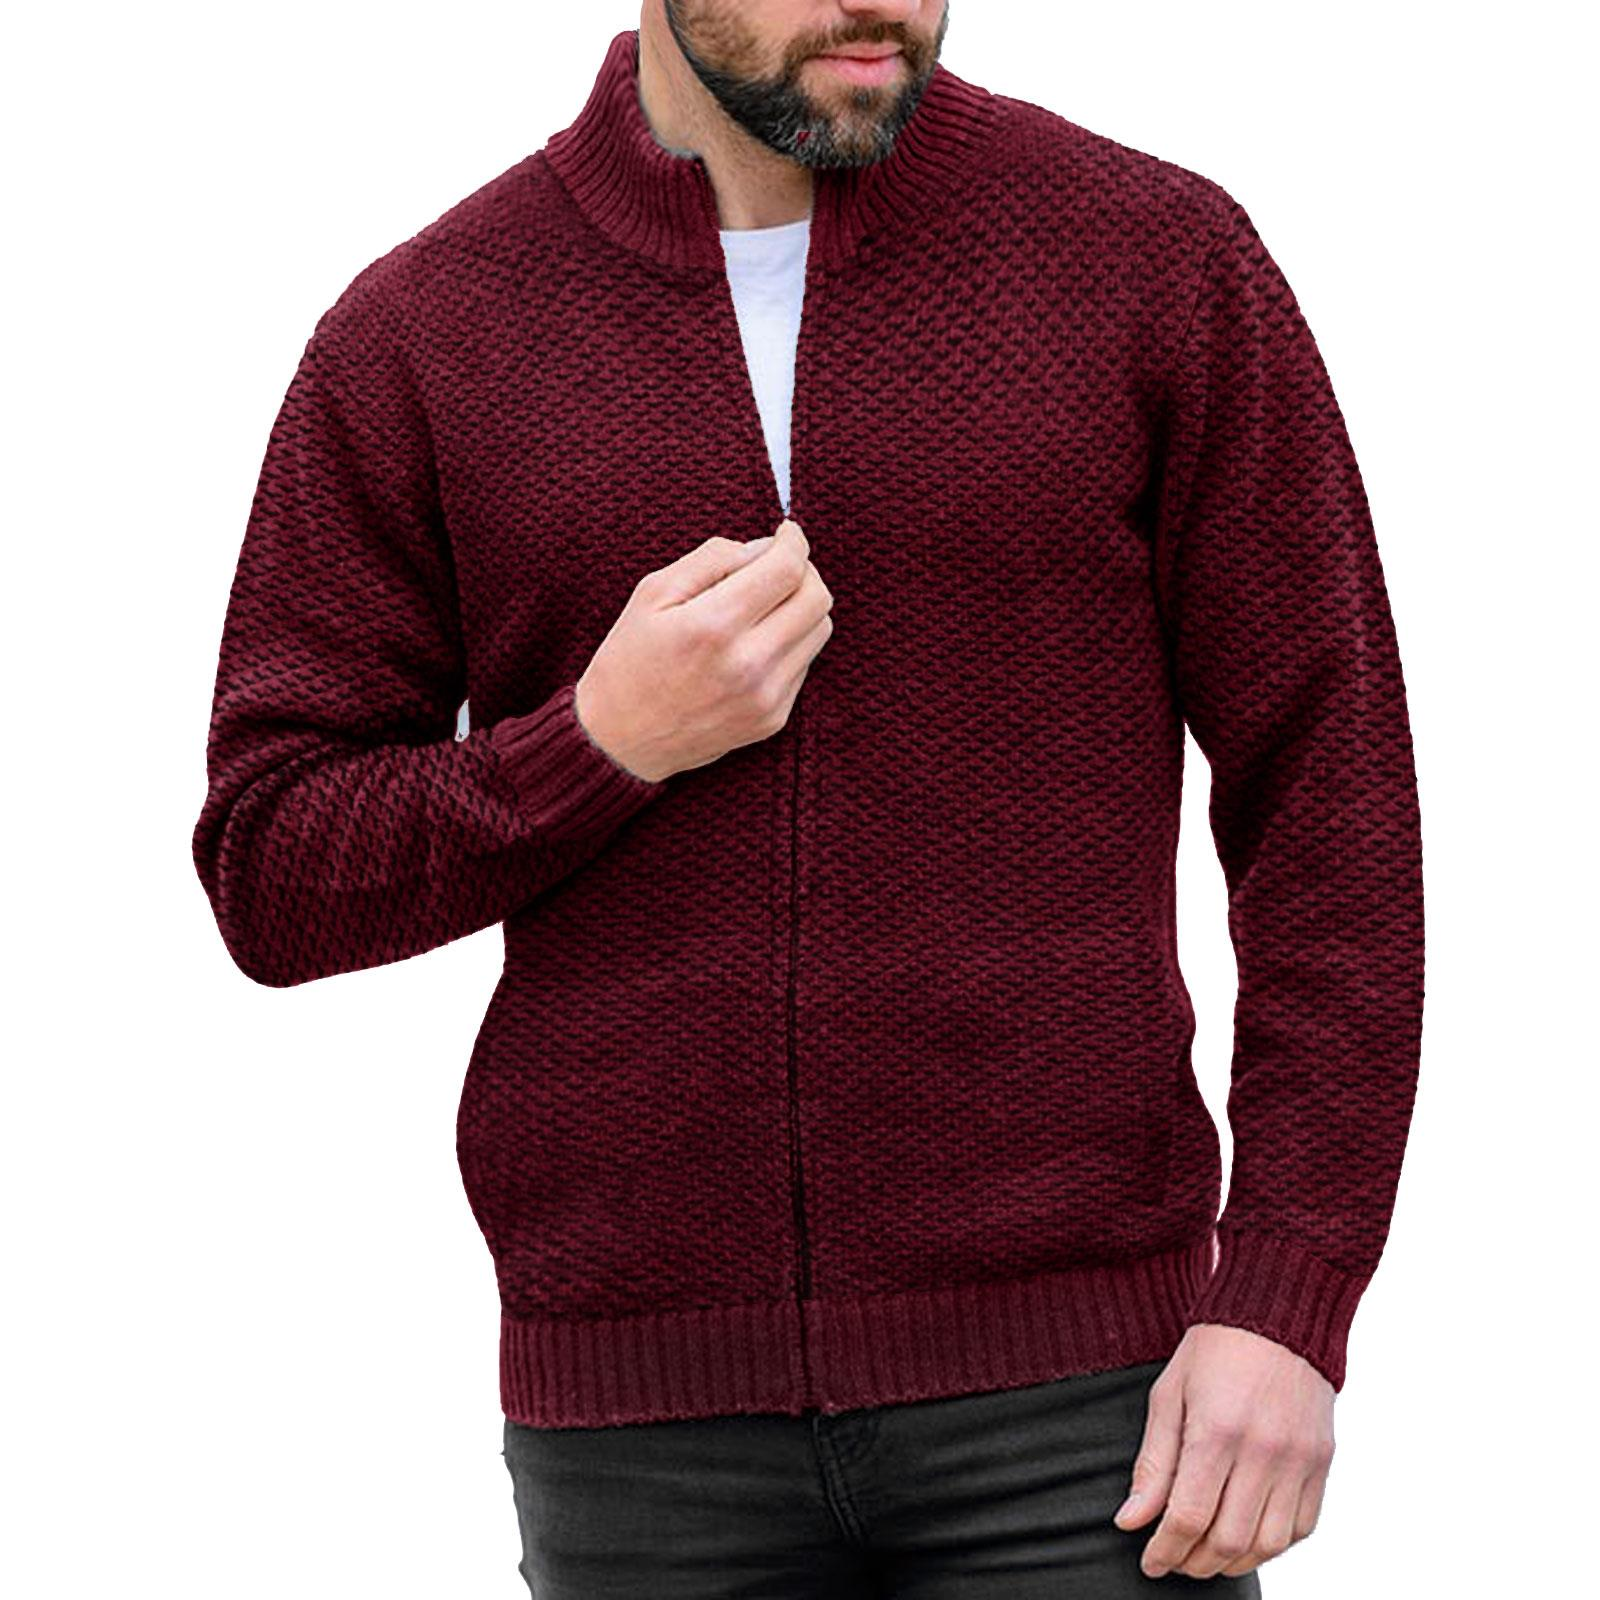 MENS SOFT WOOLLEN KNITTED JUMPER TURTLE FUNNEL NECK ZIP UP CARDIGAN SWEATER TOP